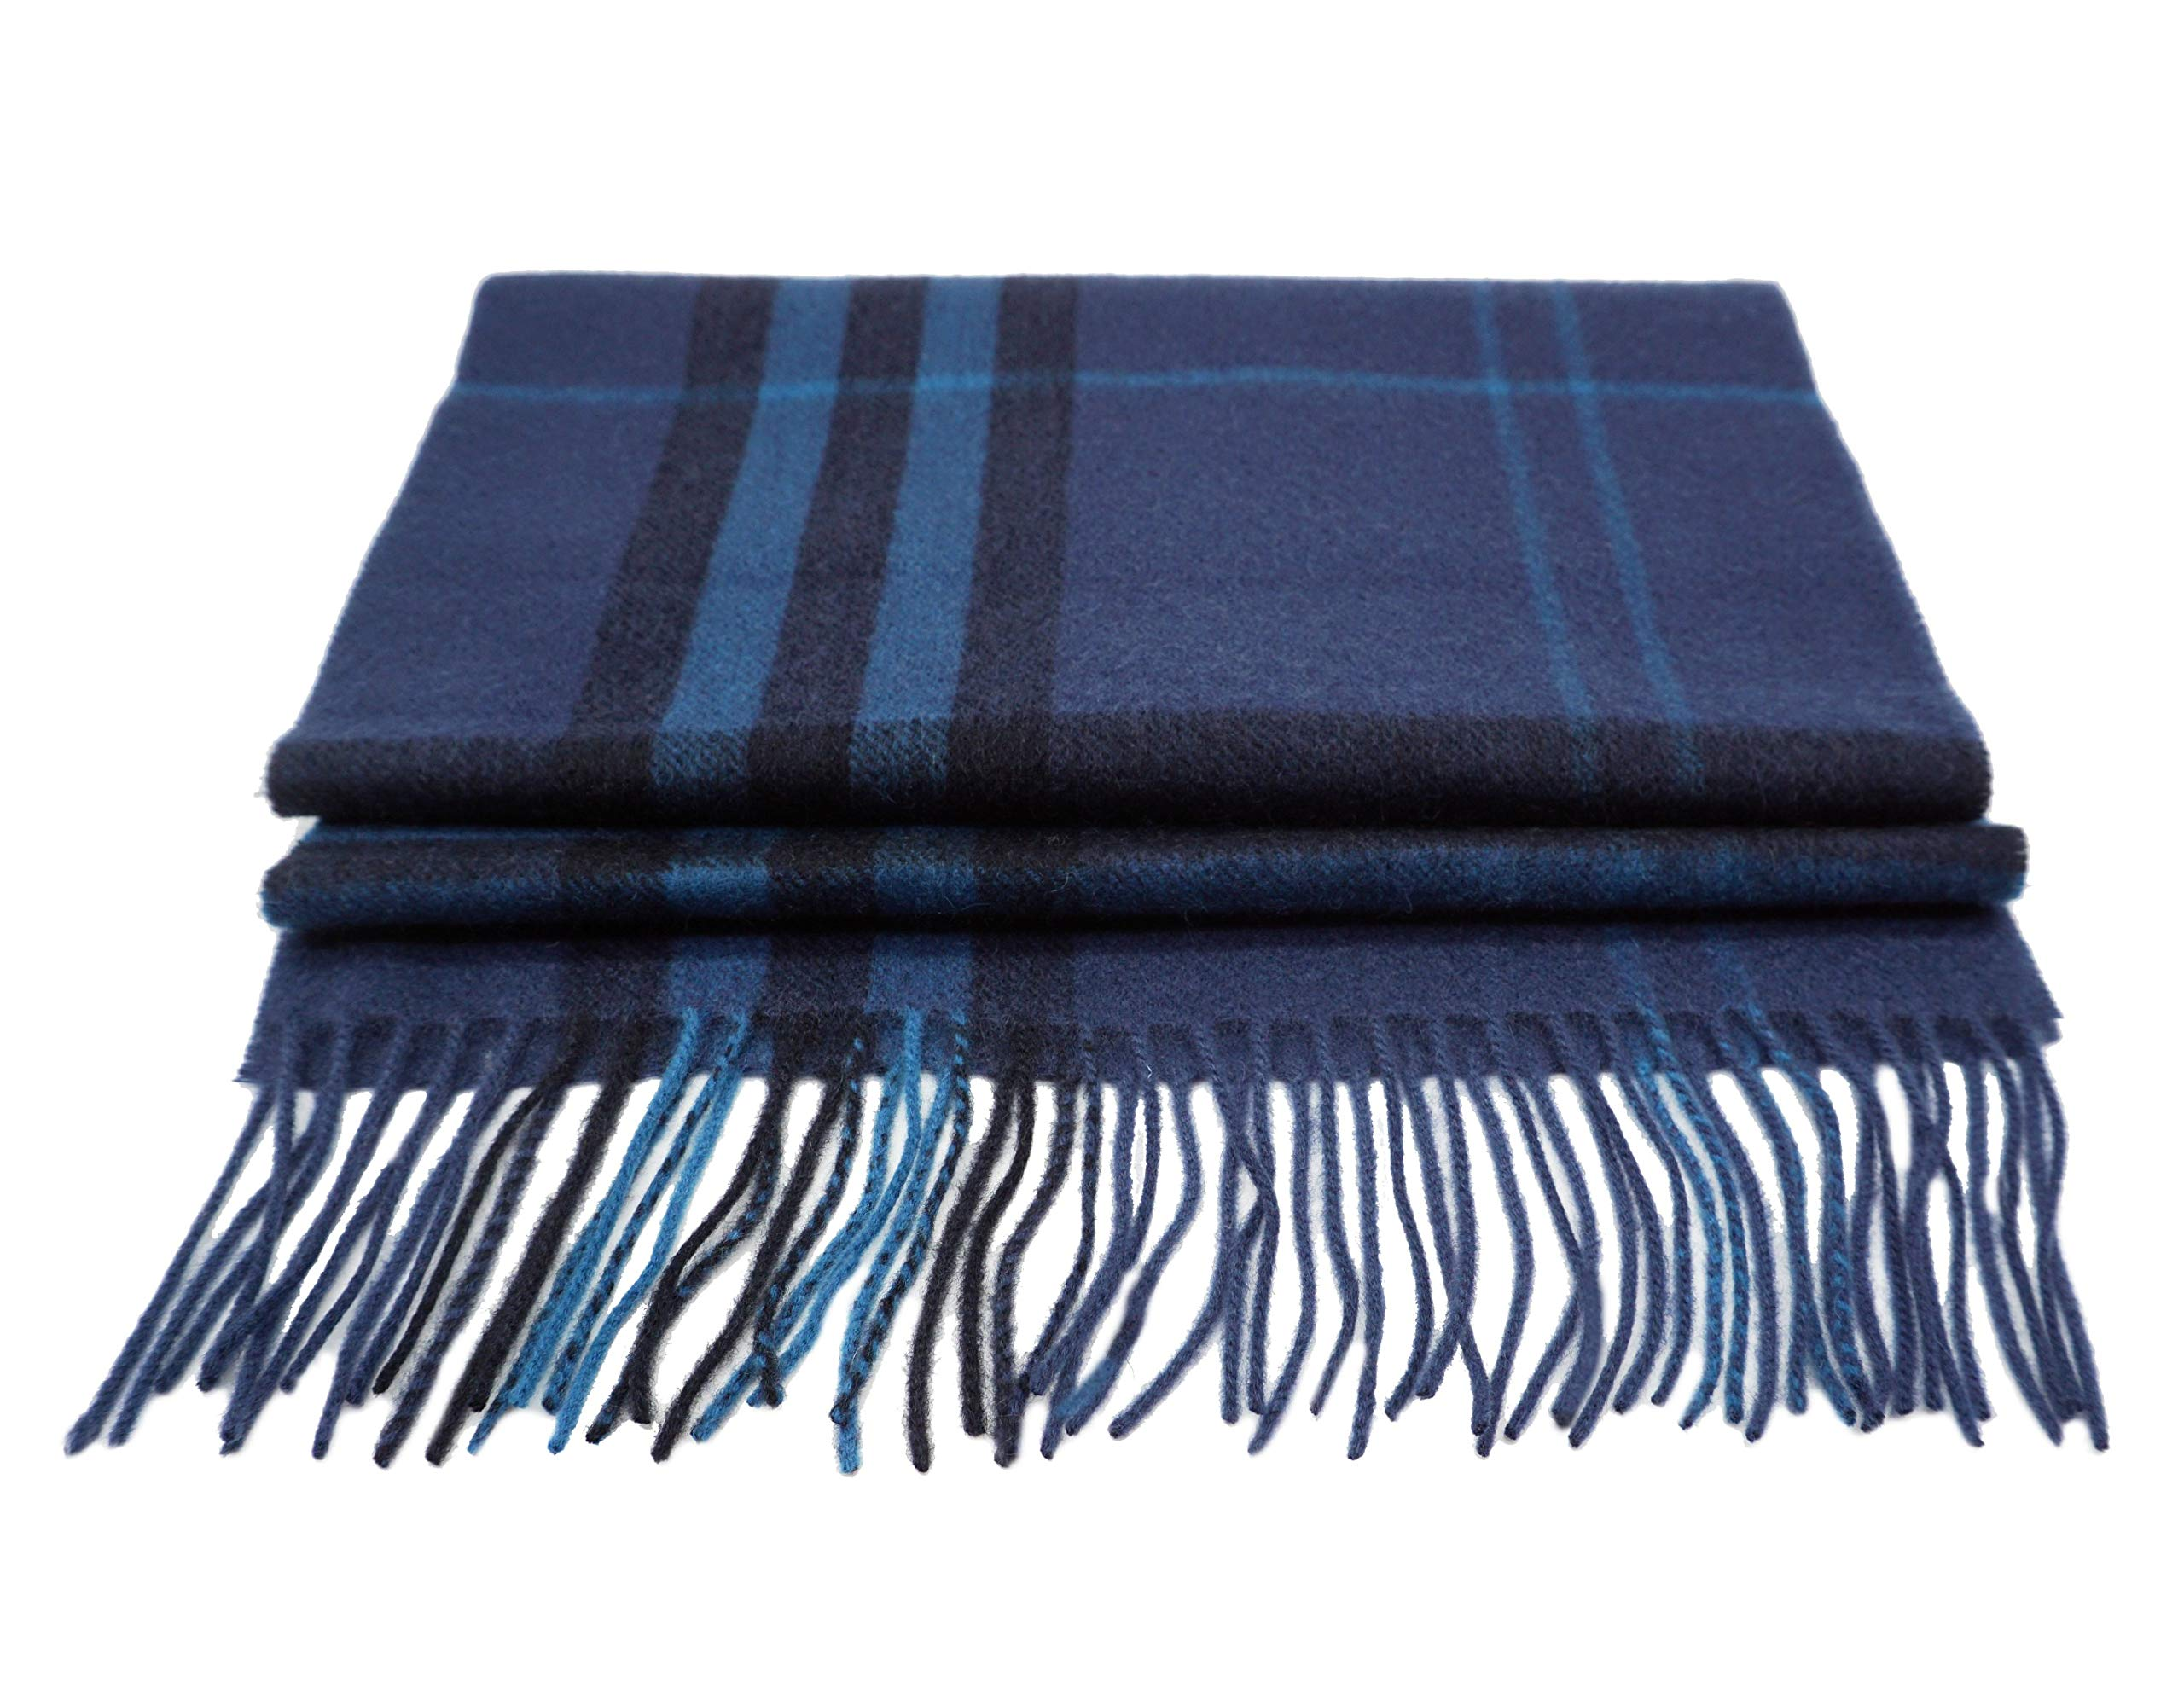 State Cashmere Unisex 100% Cashmere Plaid Scarf with Fringe 12'' x 65'' + 3'' x 2 by State Cashmere